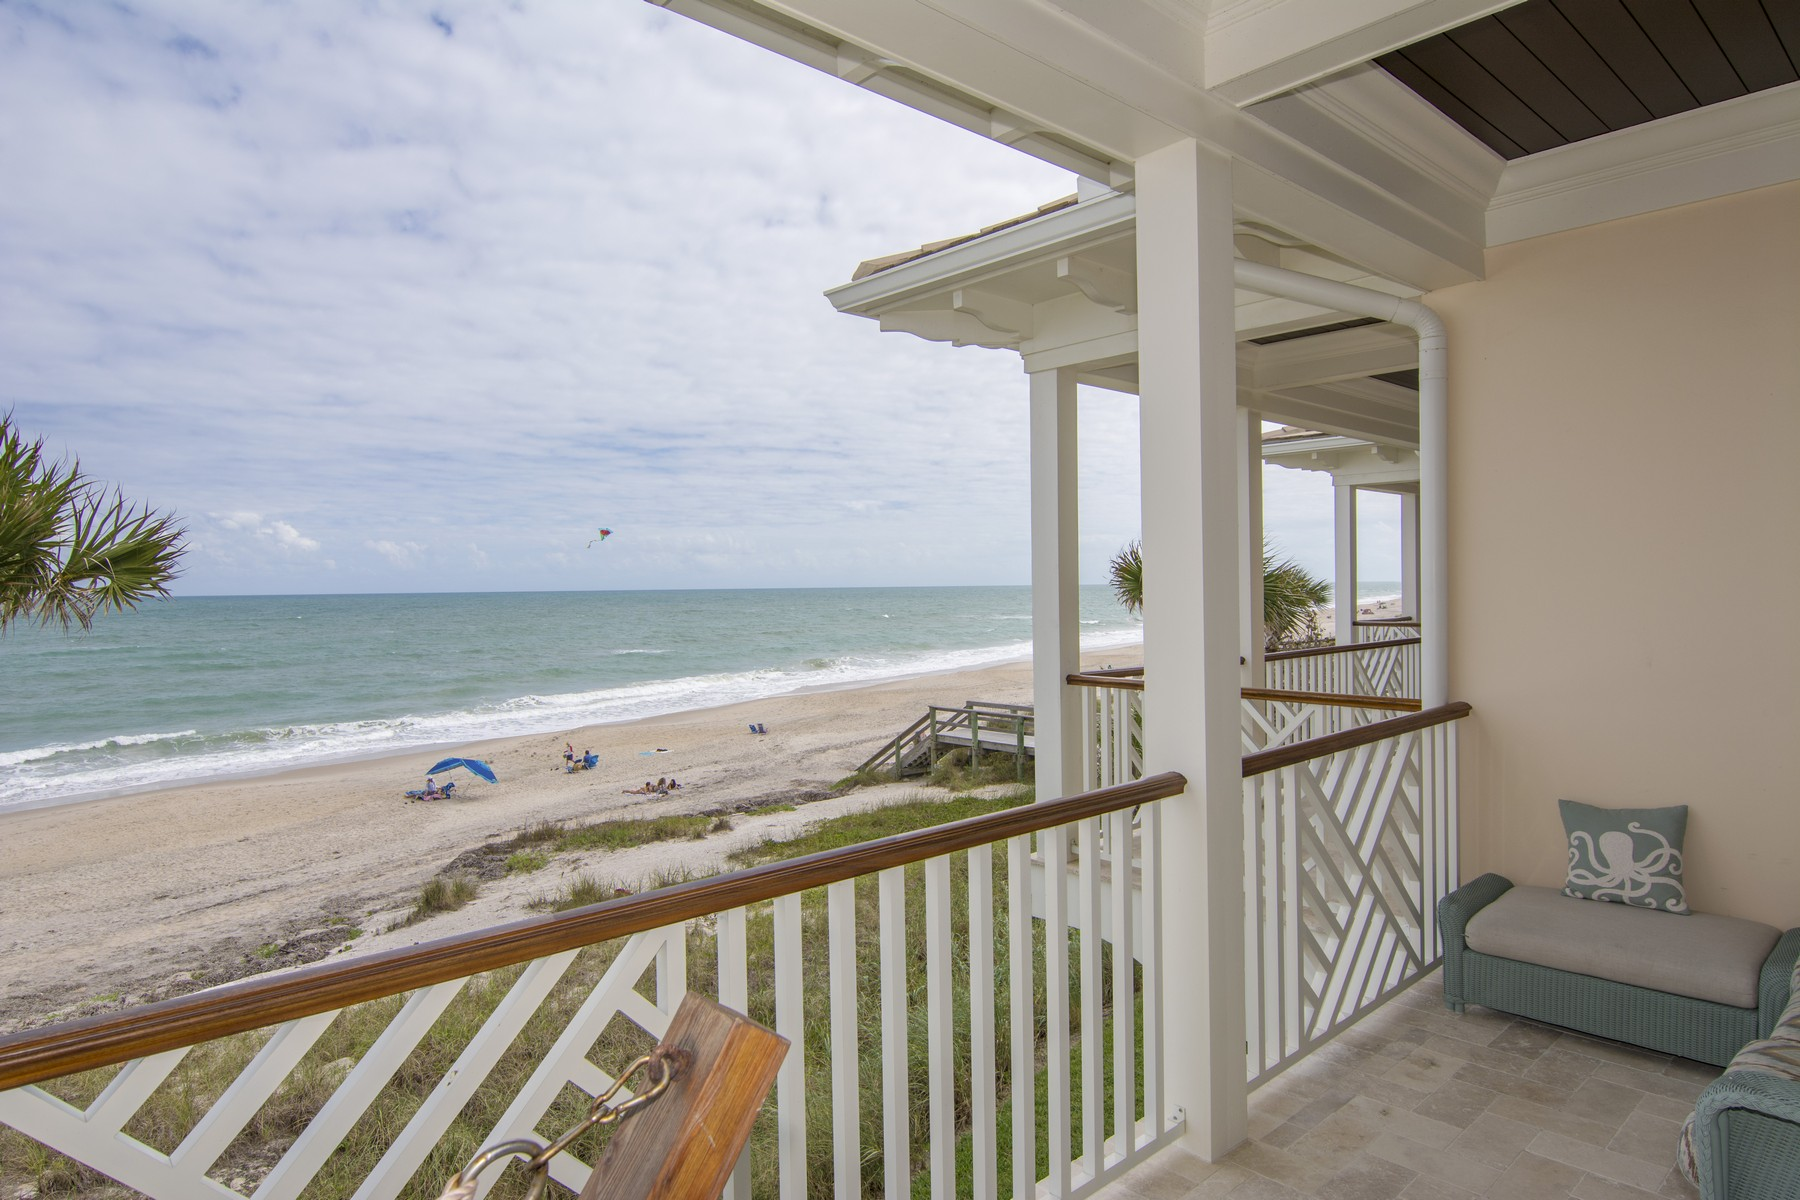 Additional photo for property listing at Oceanfront - Walk to Vero's Island Amenities 1025 Gayfeather Lane Vero Beach, Florida 32963 United States